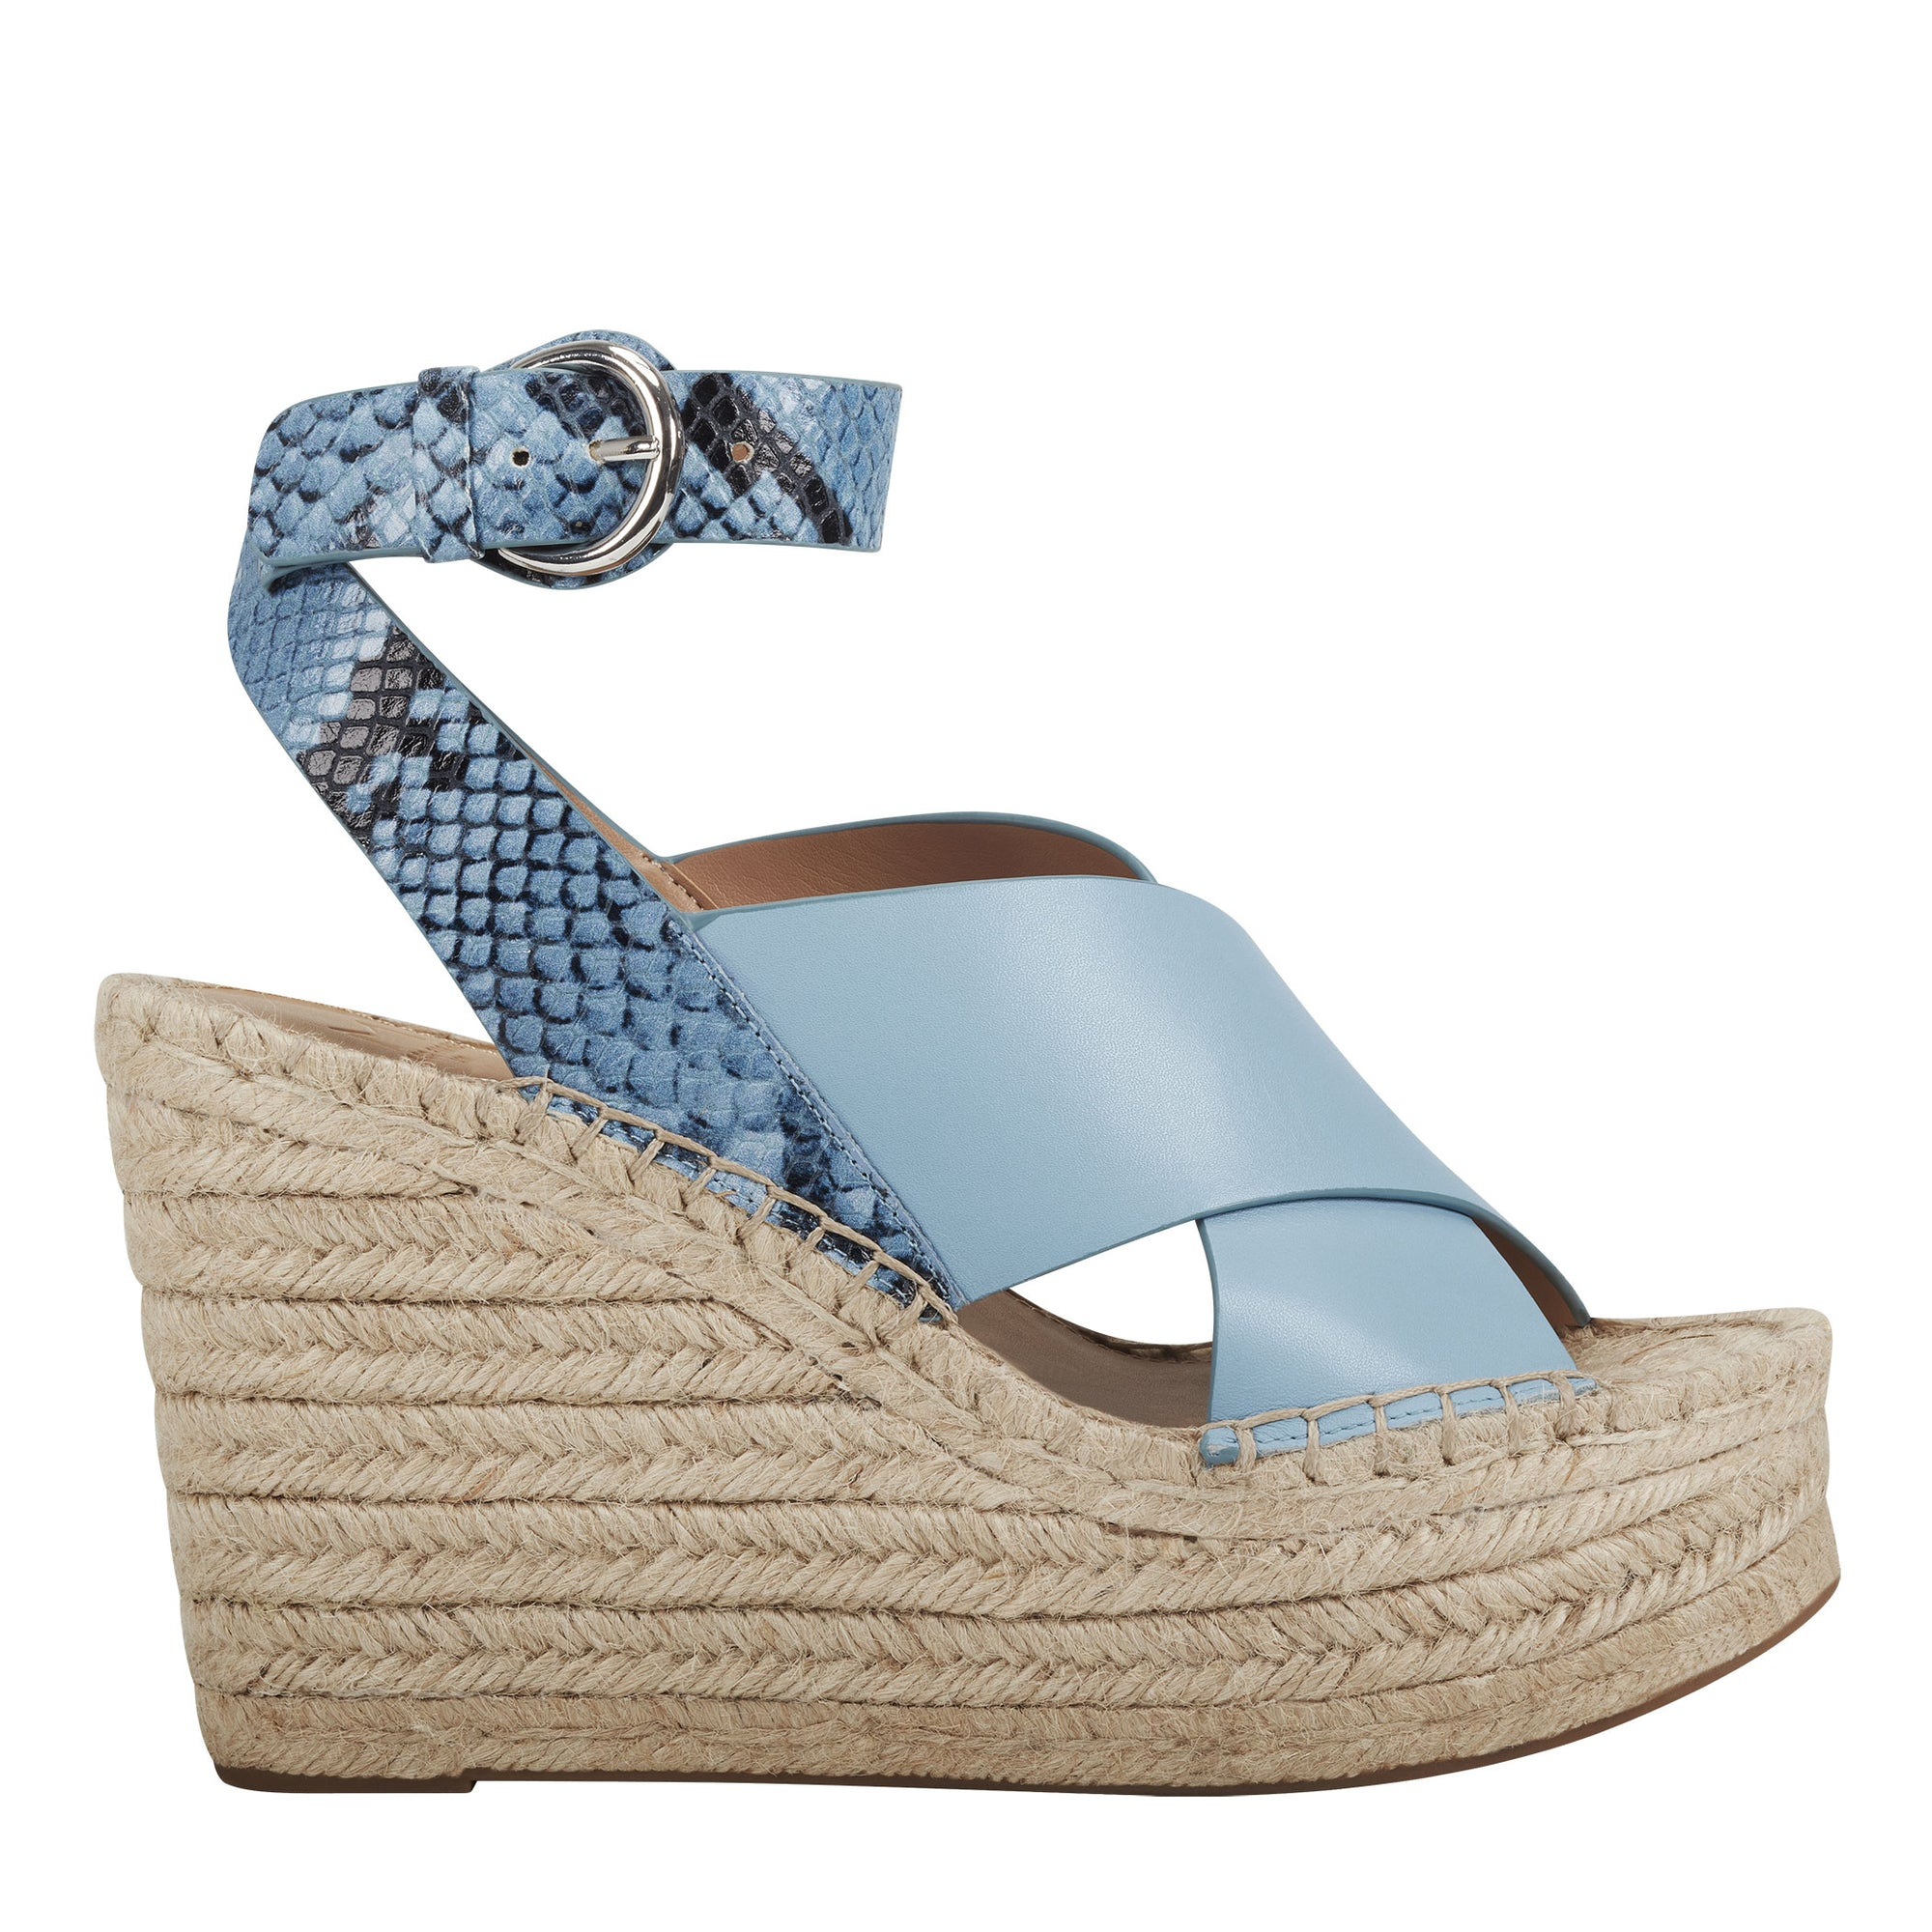 abacia-espadrille-wedge-sandal-in-blue-snake-printed-leather